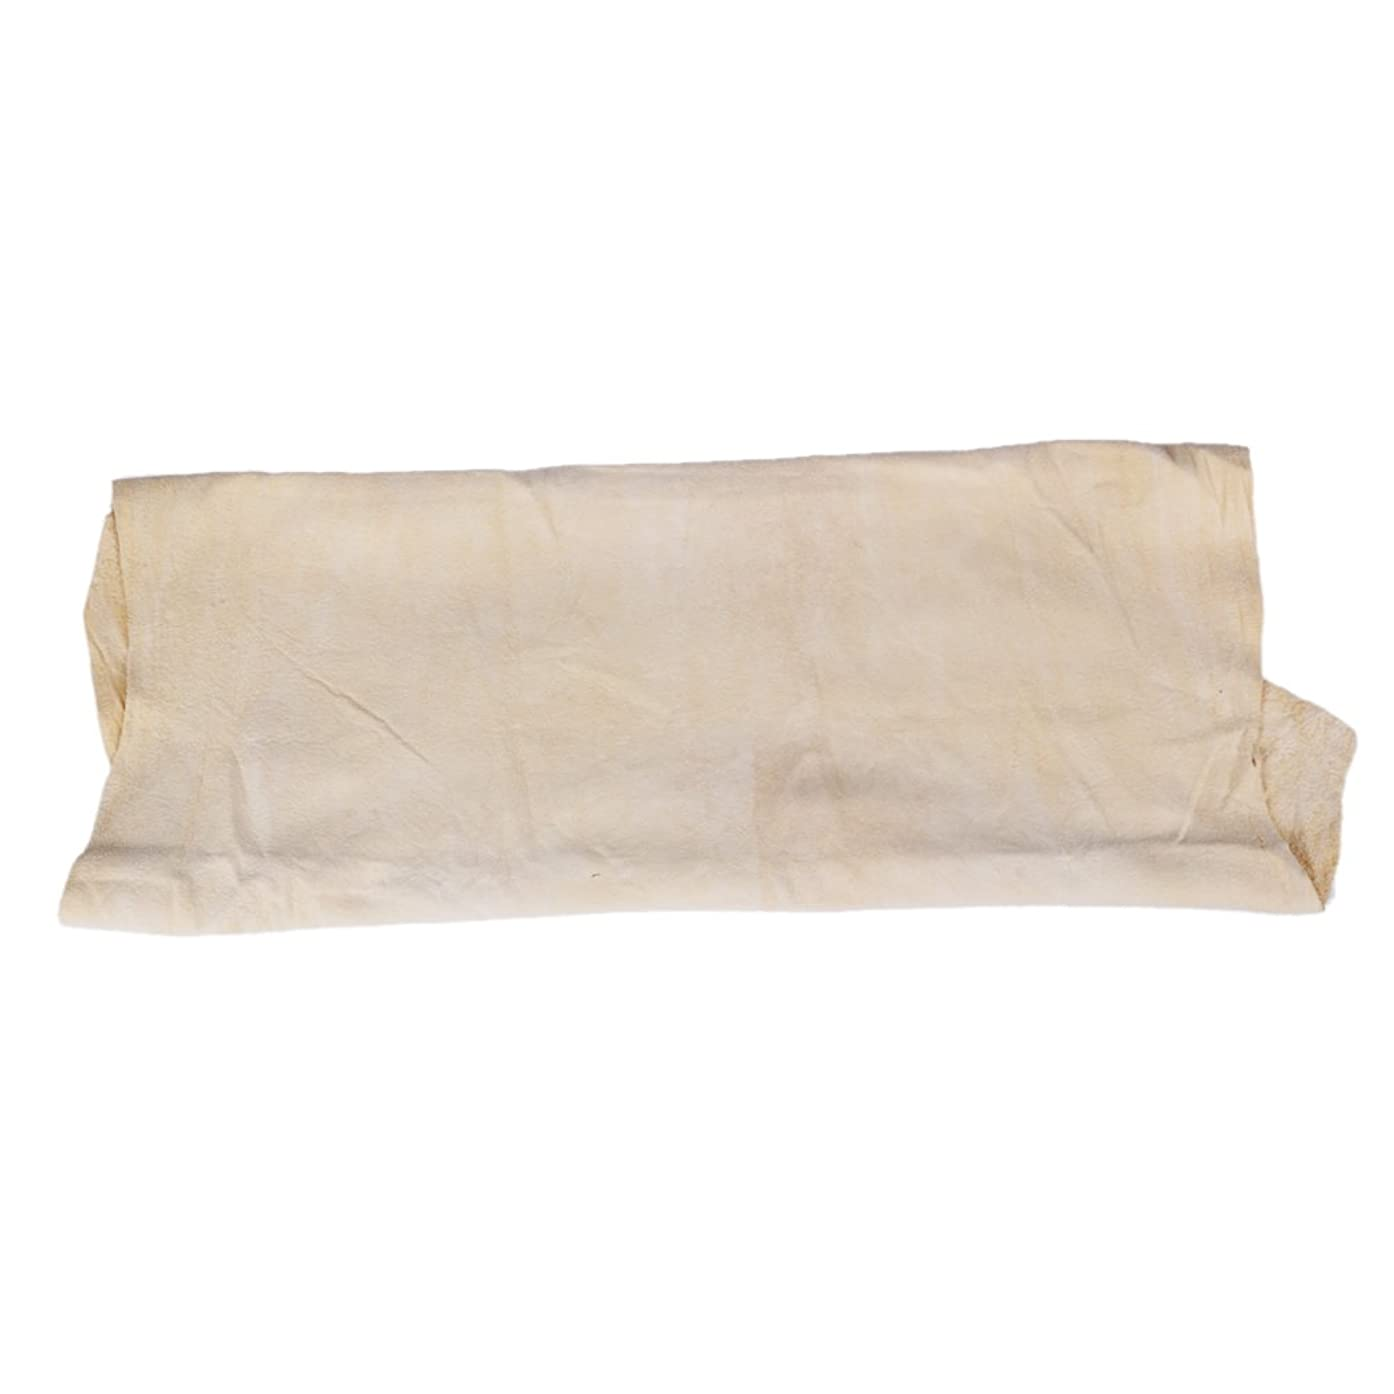 Yanrifeng Drying Cleaning Towel Natural Genuine Leather Chamois Shammy Sponge Cloth